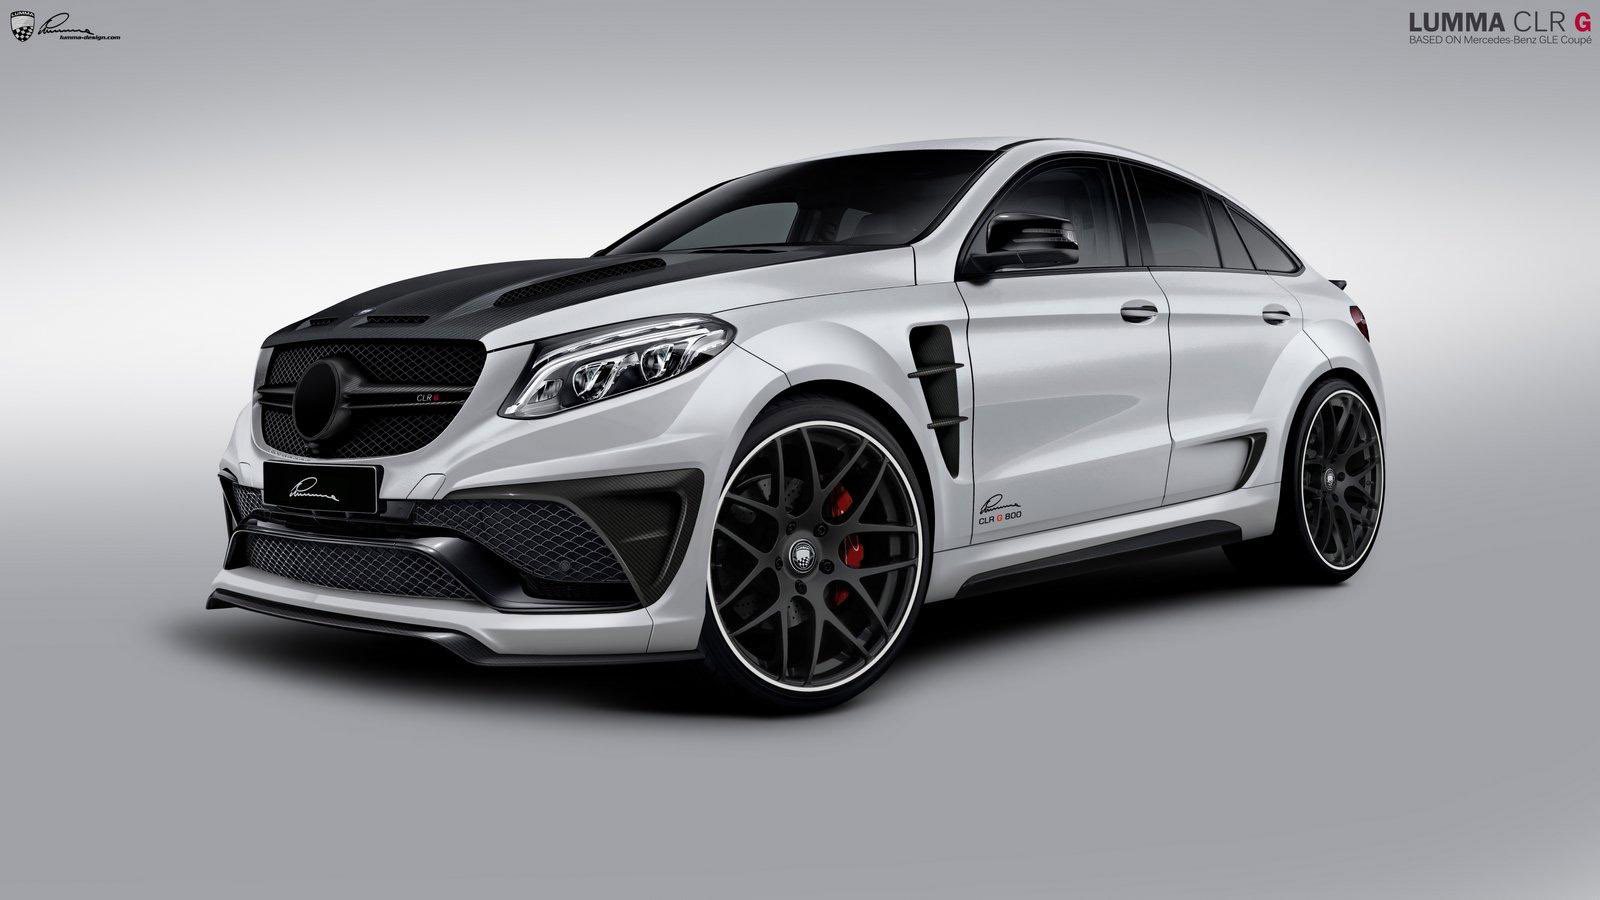 Lumma design to present mercedes benz gle coupe clr g 800 for Mercedes benz of minneapolis